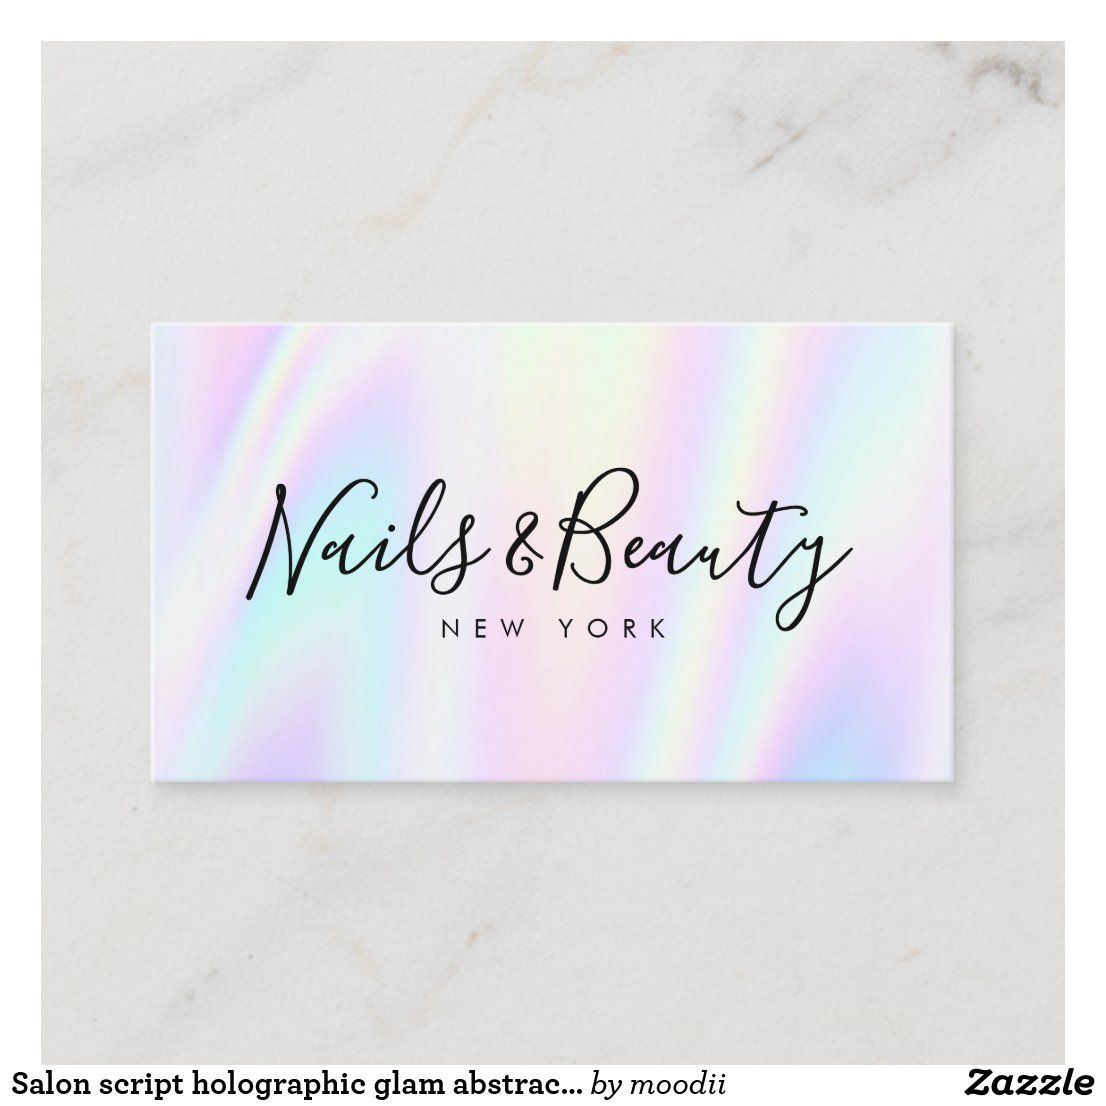 Salon Script Holographic Glam Abstract Iridescent Business Card Zazzle Com Makeup Business Cards Glitter Business Cards Salon Business Cards